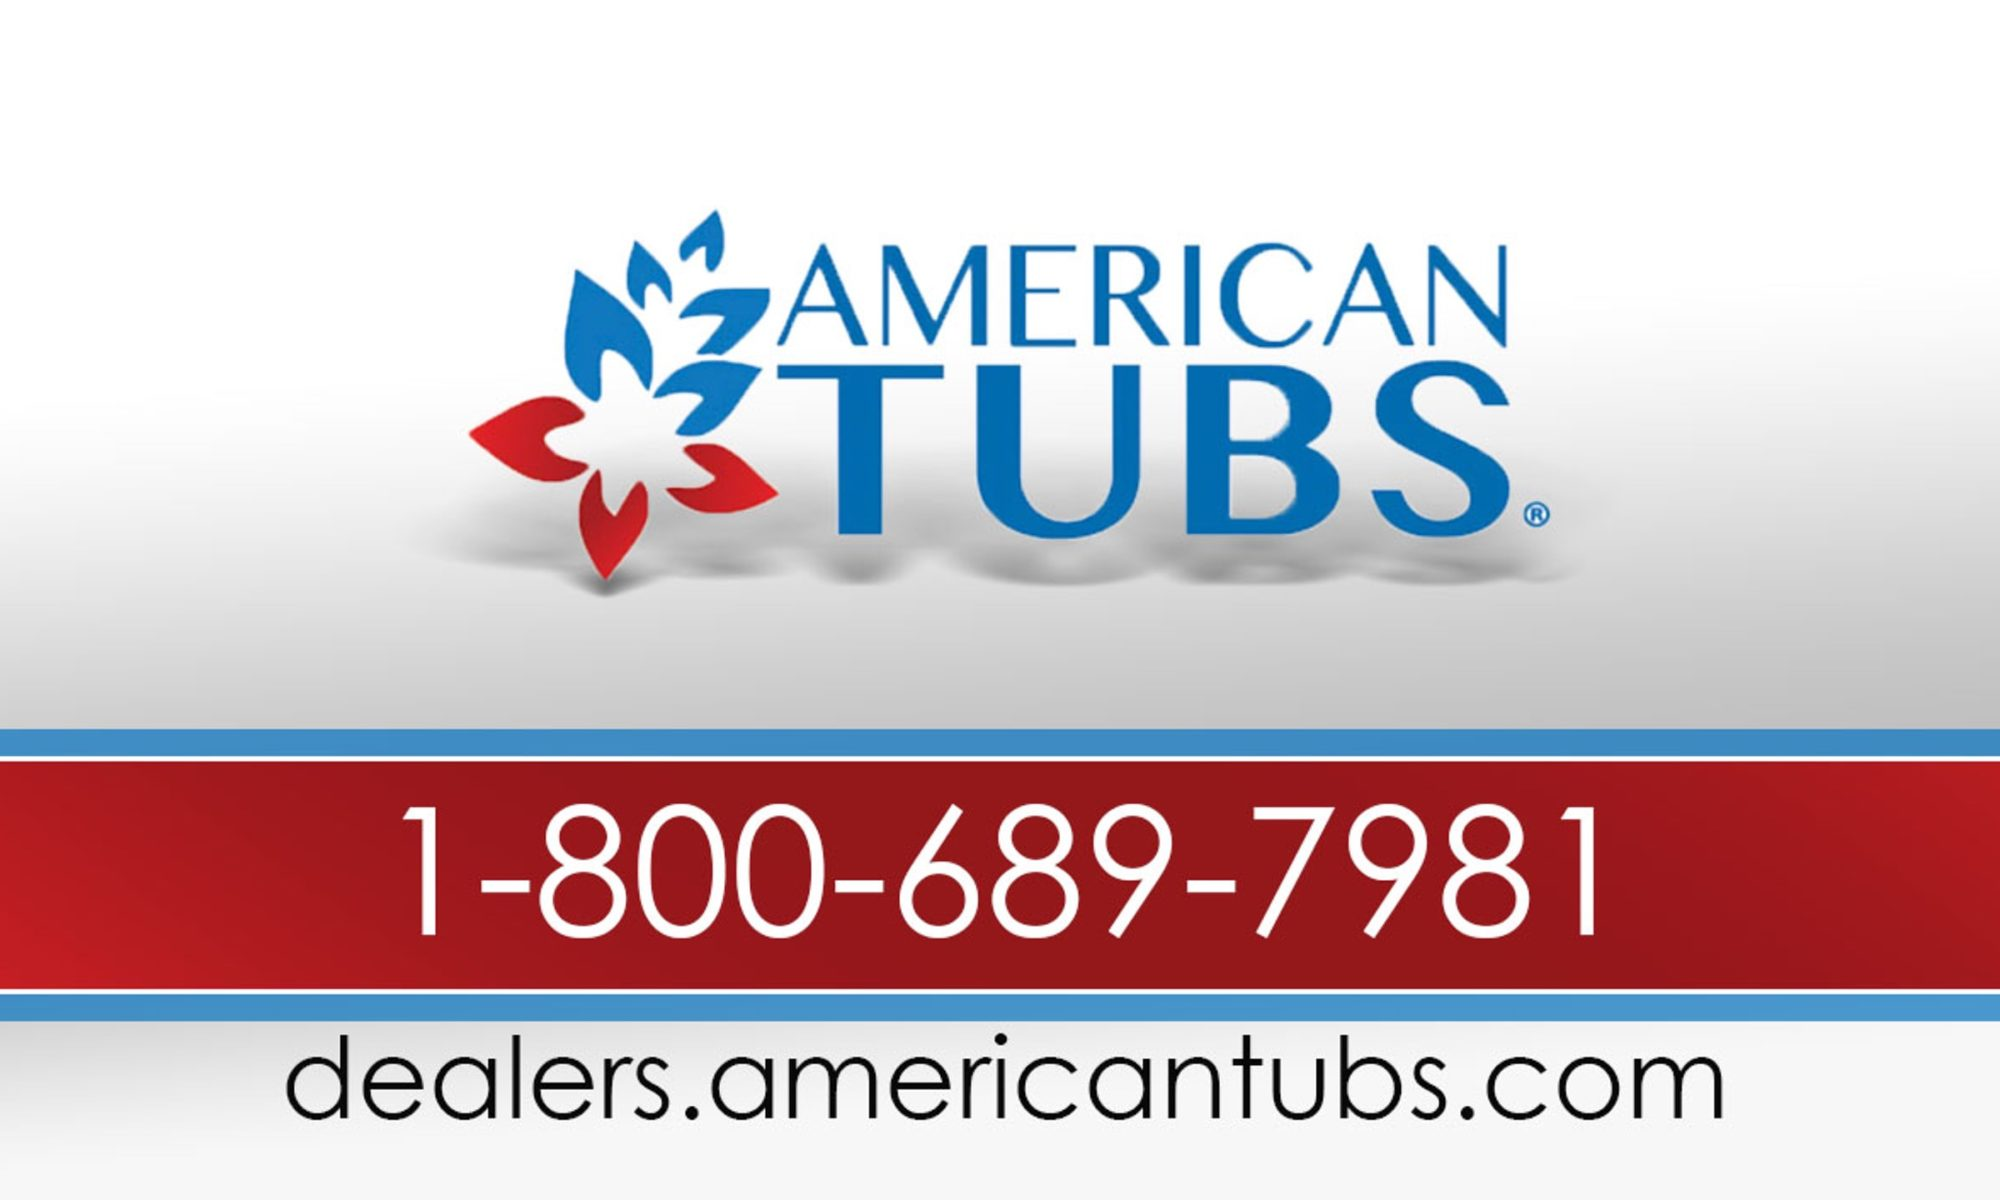 best bathtub compnany, bathtub companies, tub company, bets tub company, best bathtub companies,